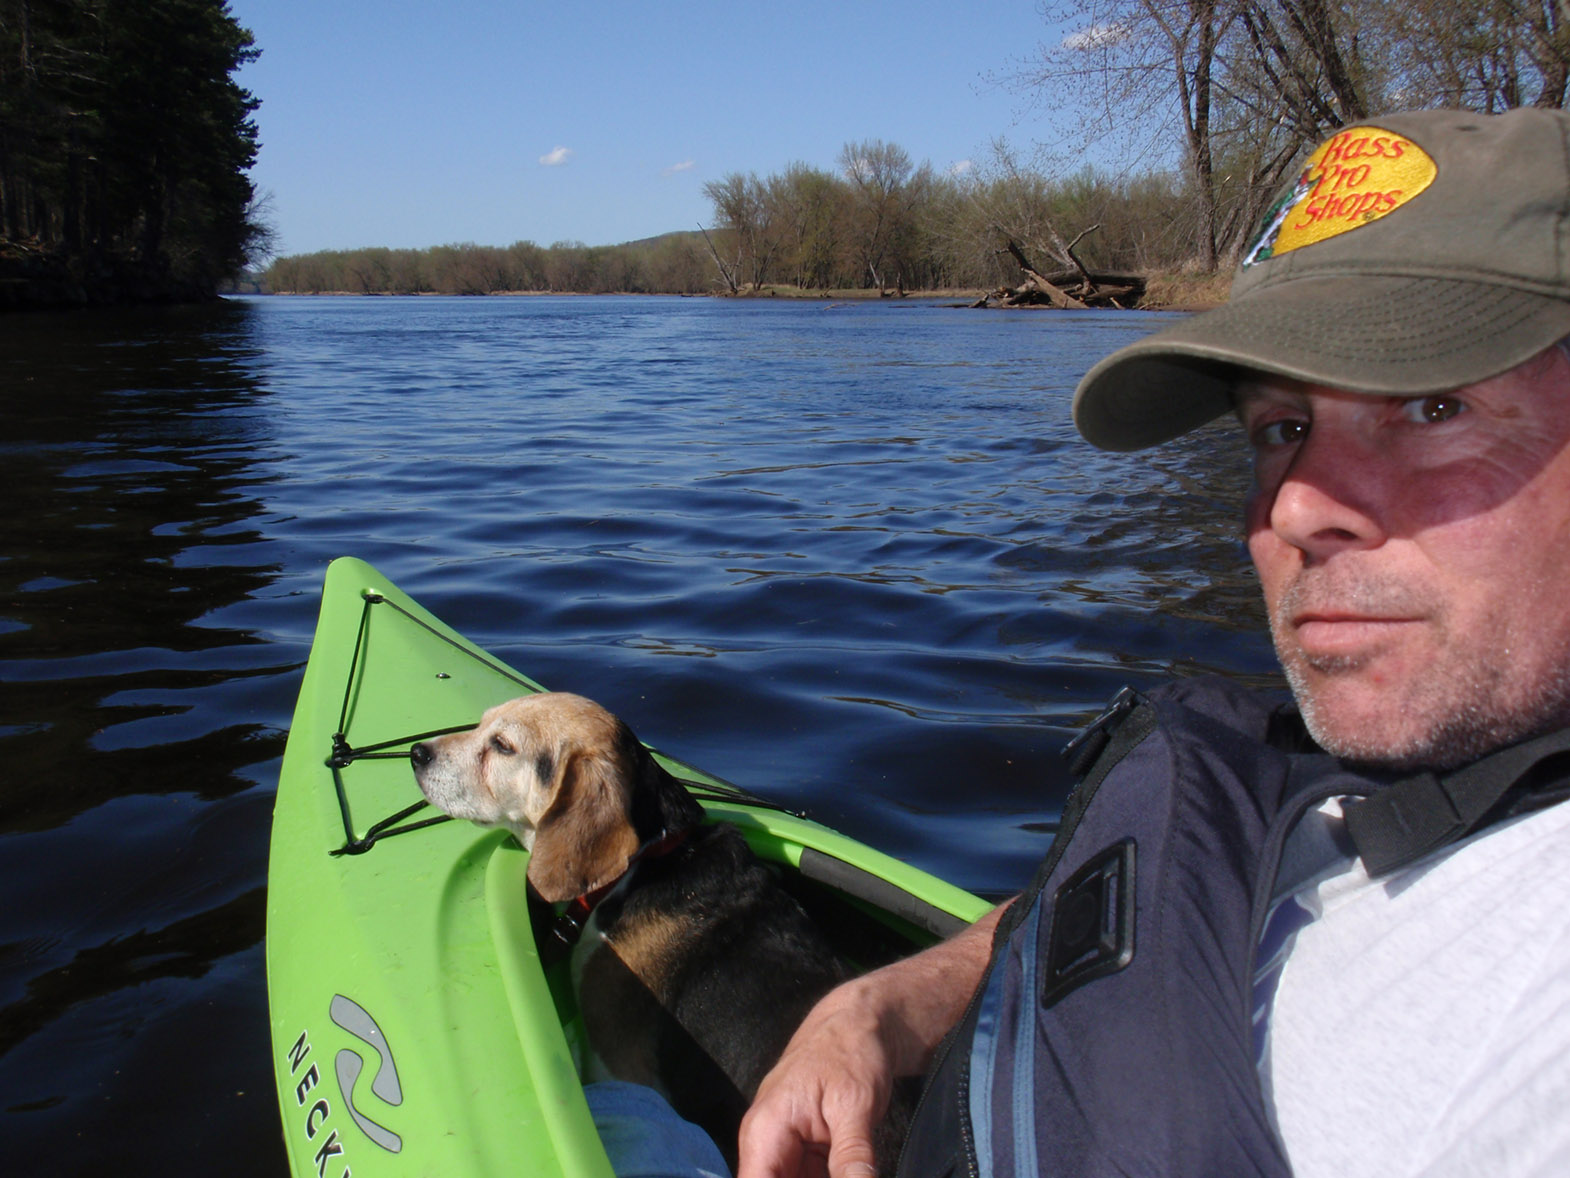 Freddie and Zulu on St. Croix River - April 2010